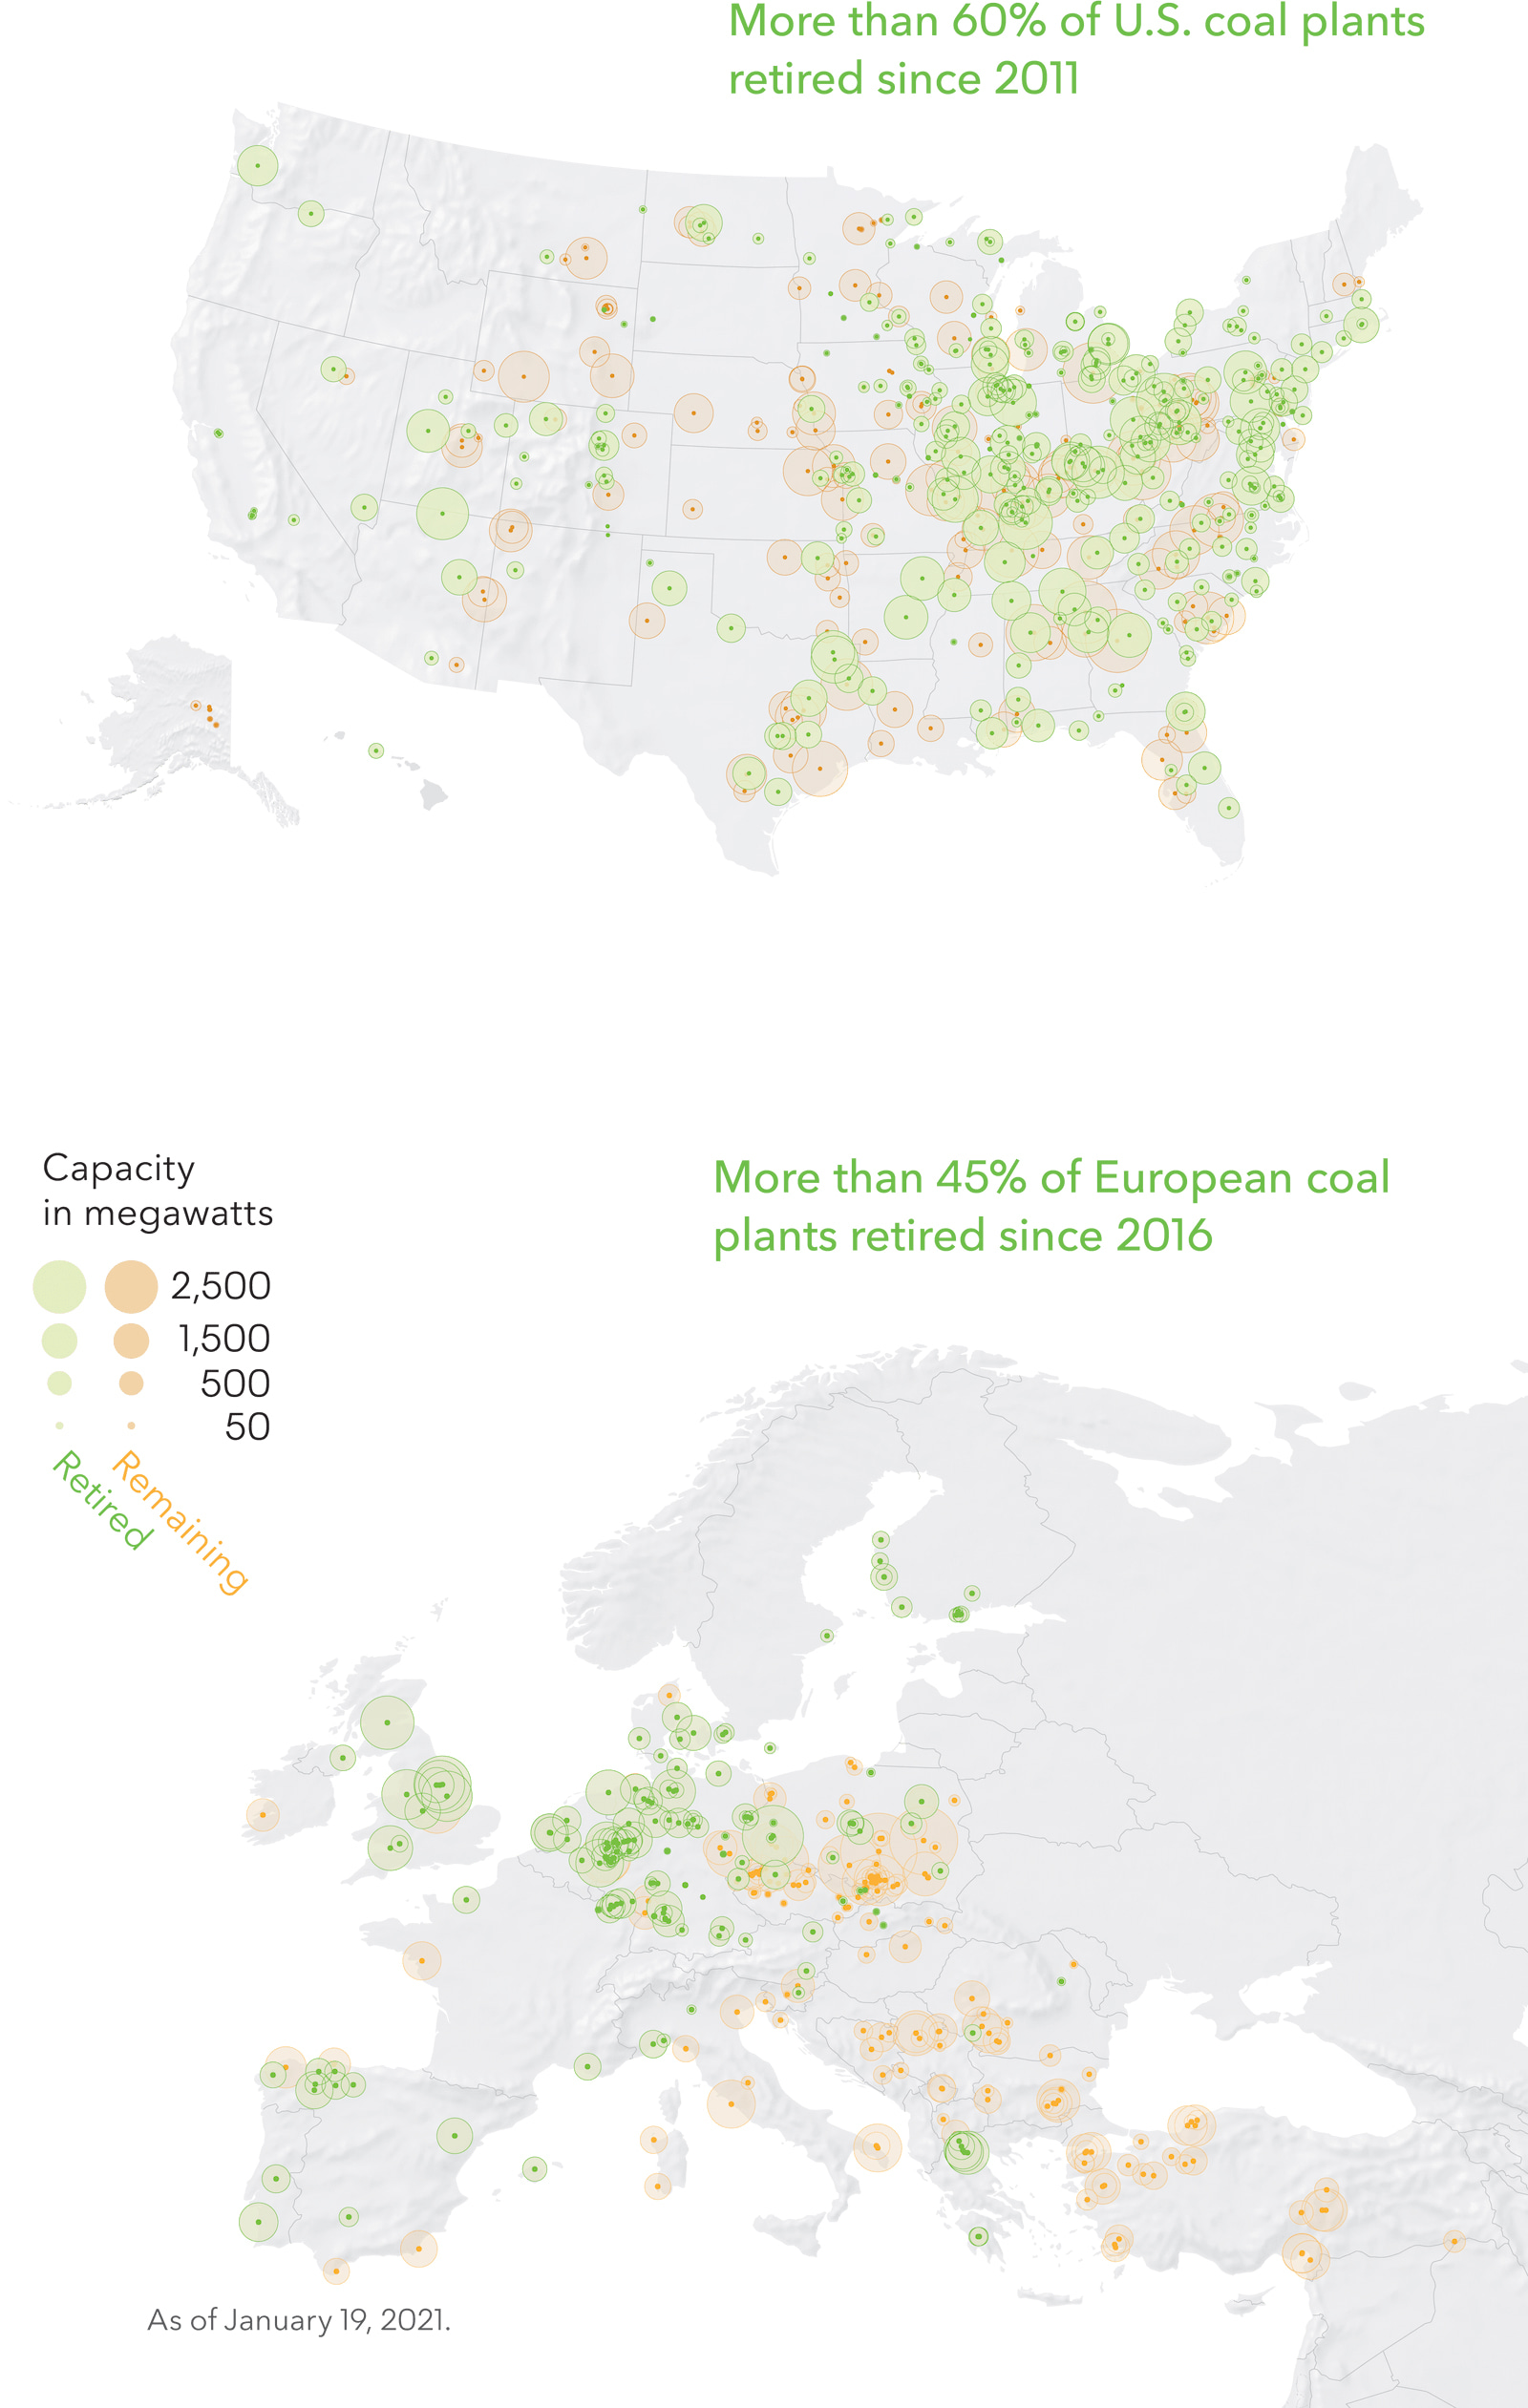 More than 60% of U.S. coal plants retired since 2011 | More than 45% of European coal plants retired since 2016